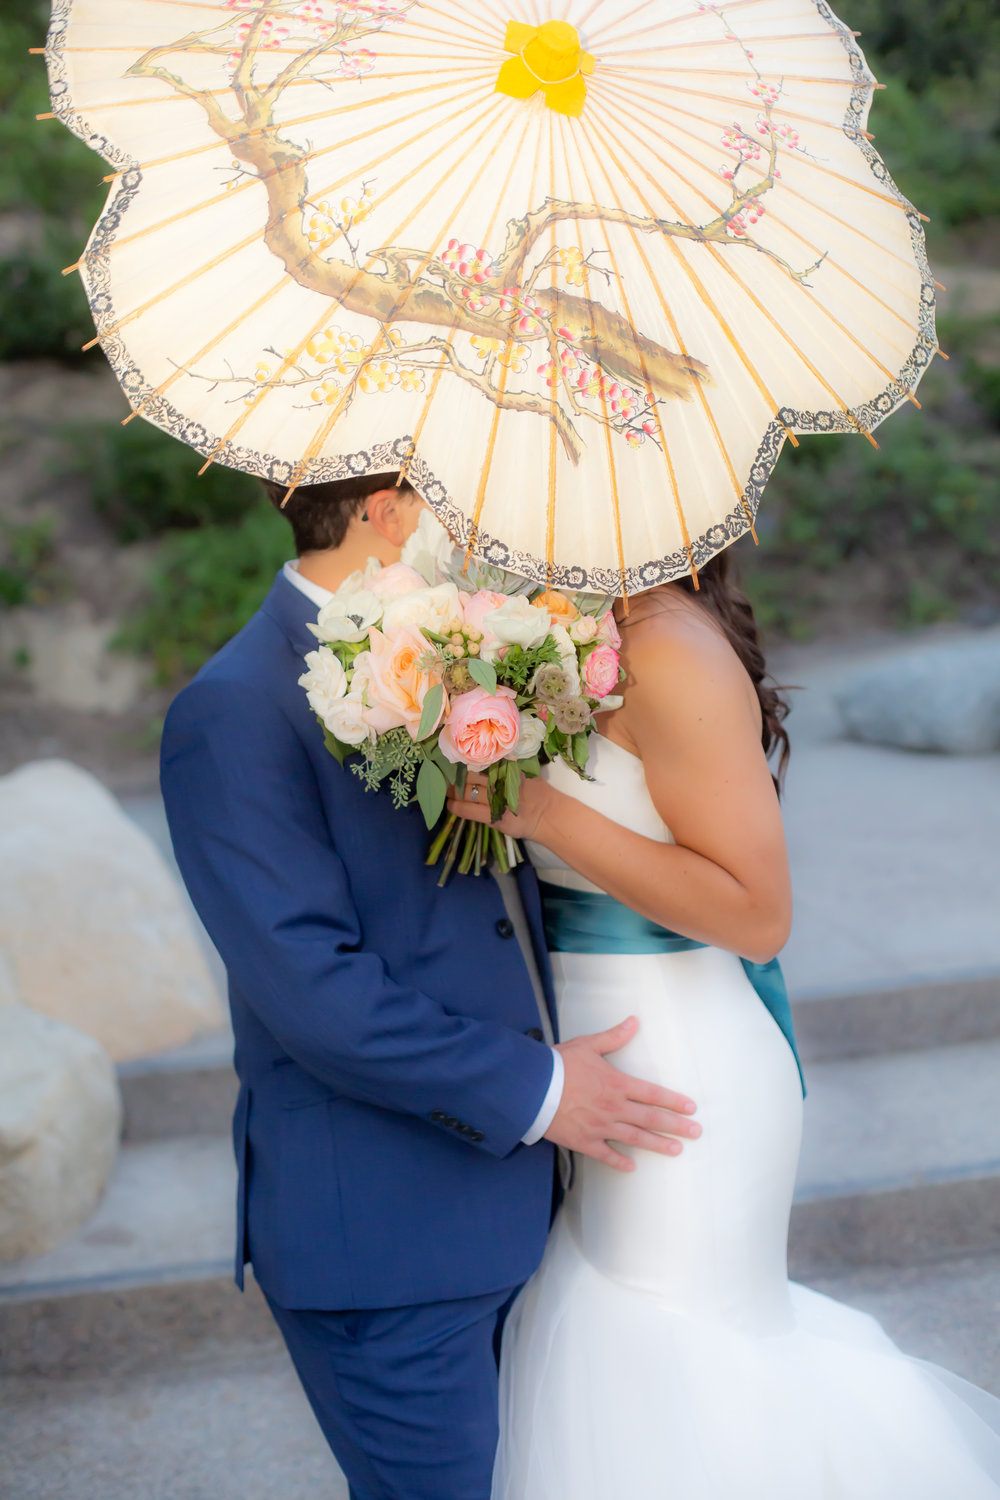 A More perfect union - Dave and Carla picked the most beautiful, serene backdrop of the Japanese Friendship Garden to start their newest adventure together.